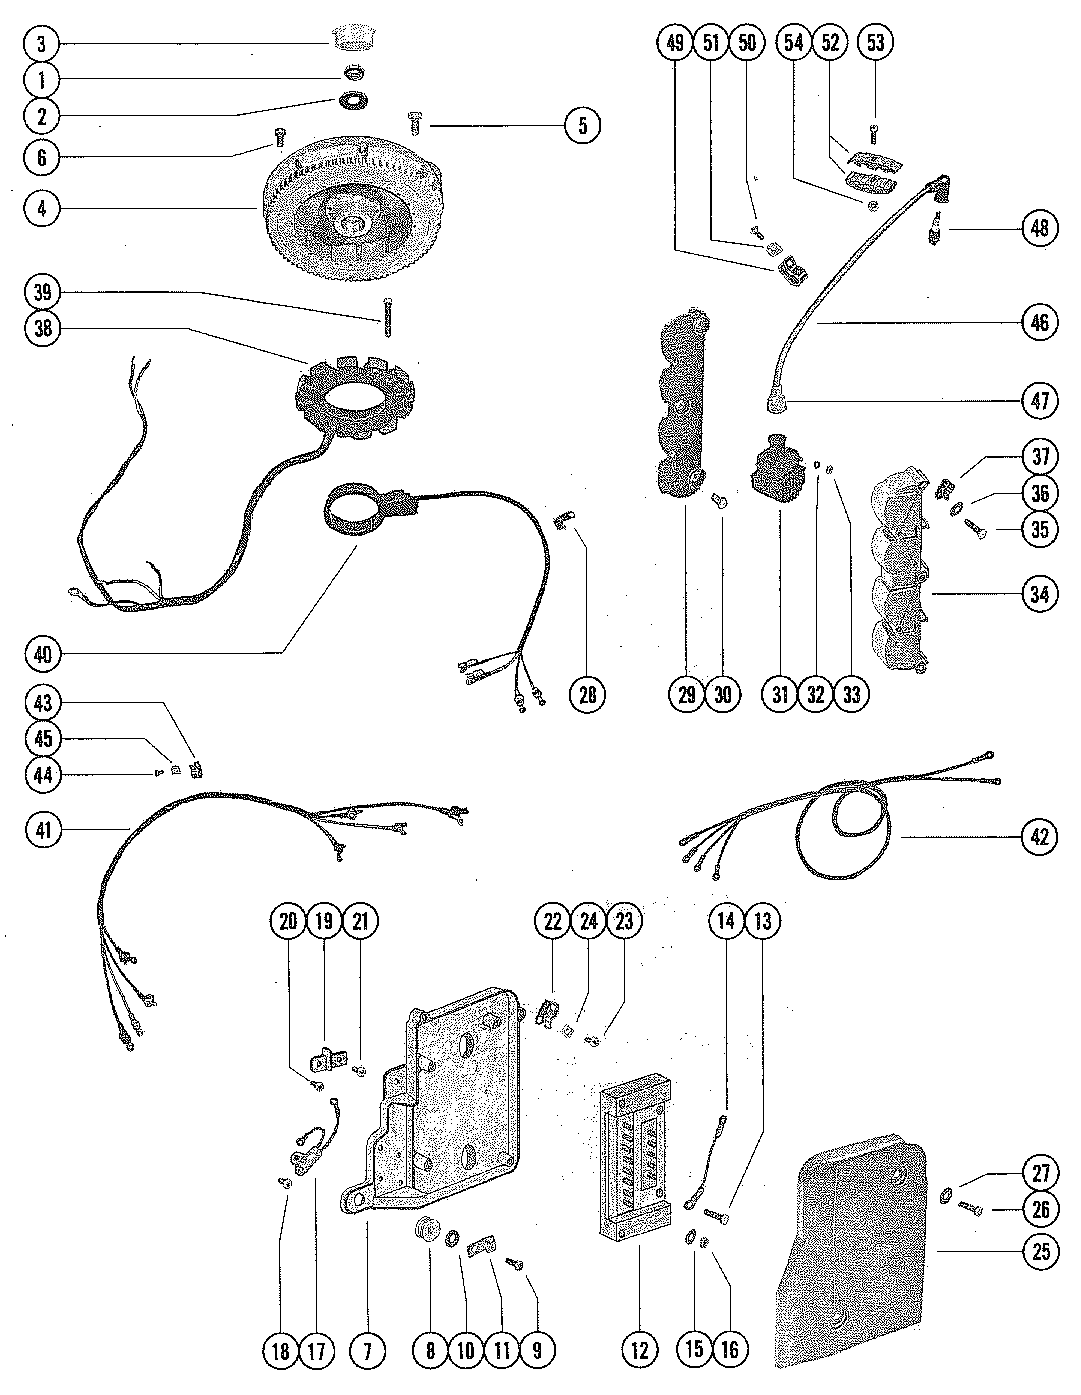 flywheel, stator and ignition coil for mariner / mercury ... 1977 mercury 500 wiring diagram polaris ranger 500 wiring diagram 2006